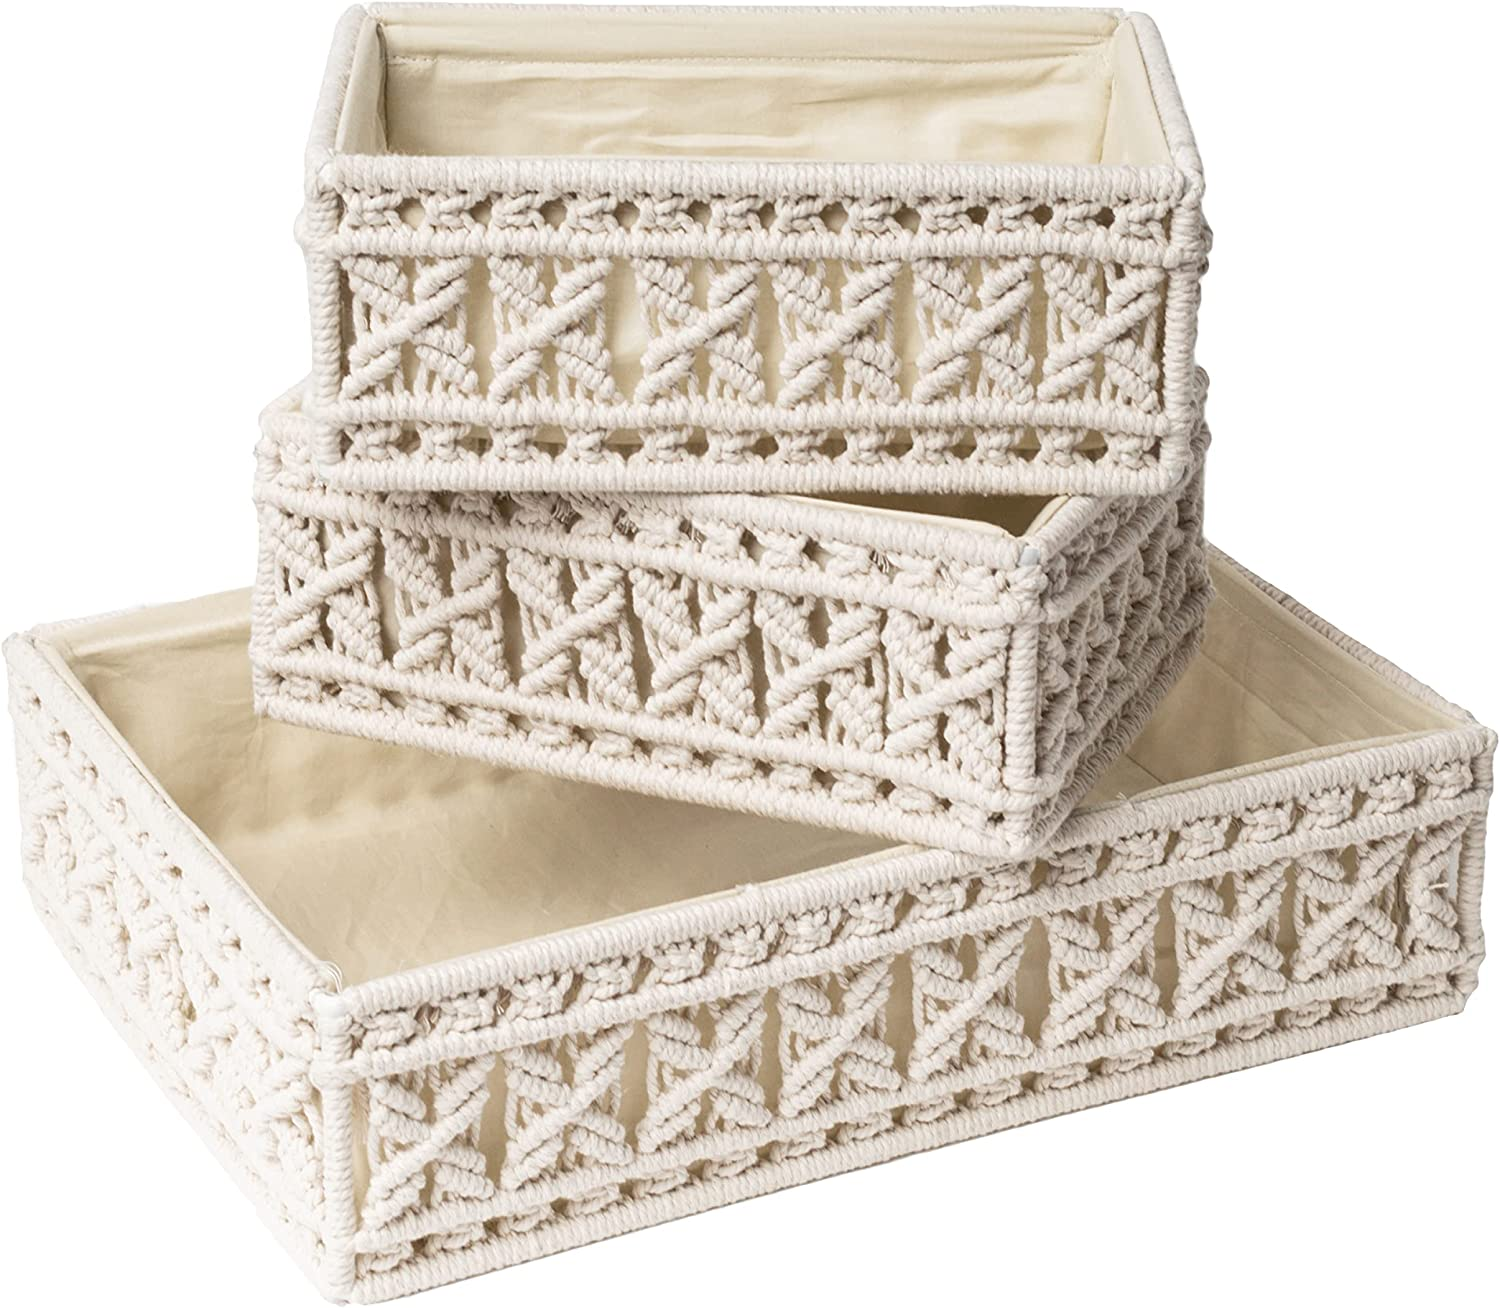 Livalaya Macrame Storage Baskets Spring new work one after another Oklahoma City Mall and Lining Decorative Bins with